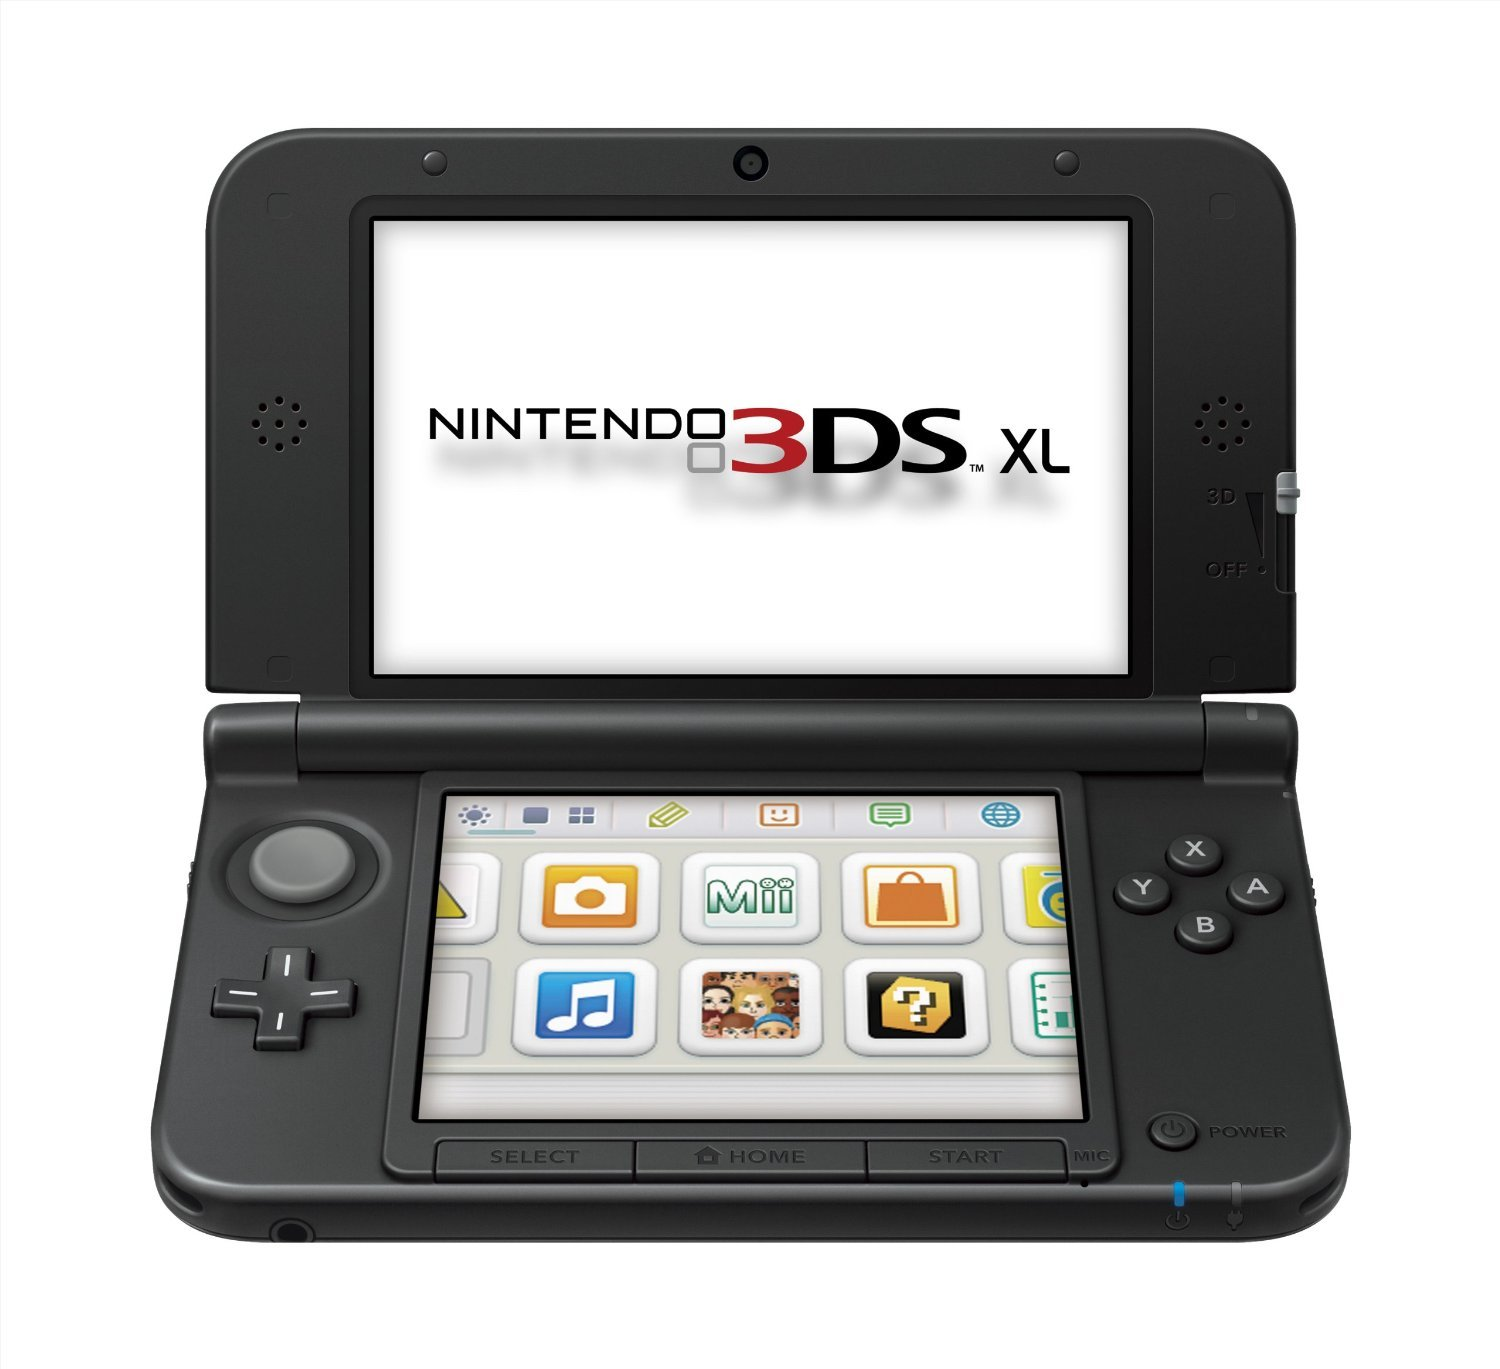 Nintendo 3DS - Consola XL, Color Negro: Amazon.es: Videojuegos